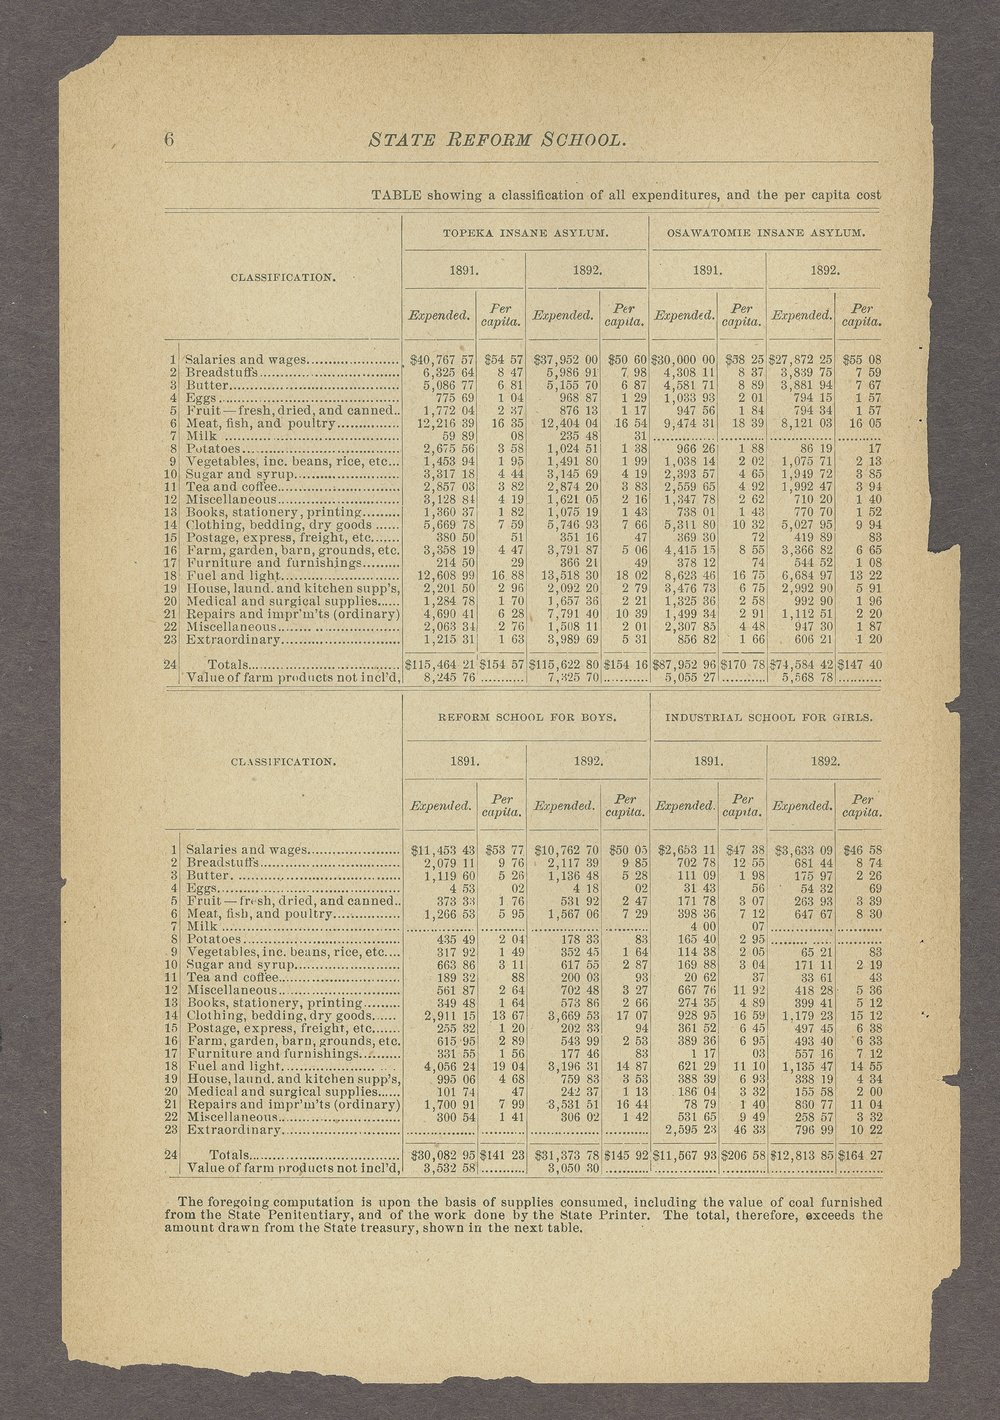 Biennial report of the State Reform School, 1892 - 6